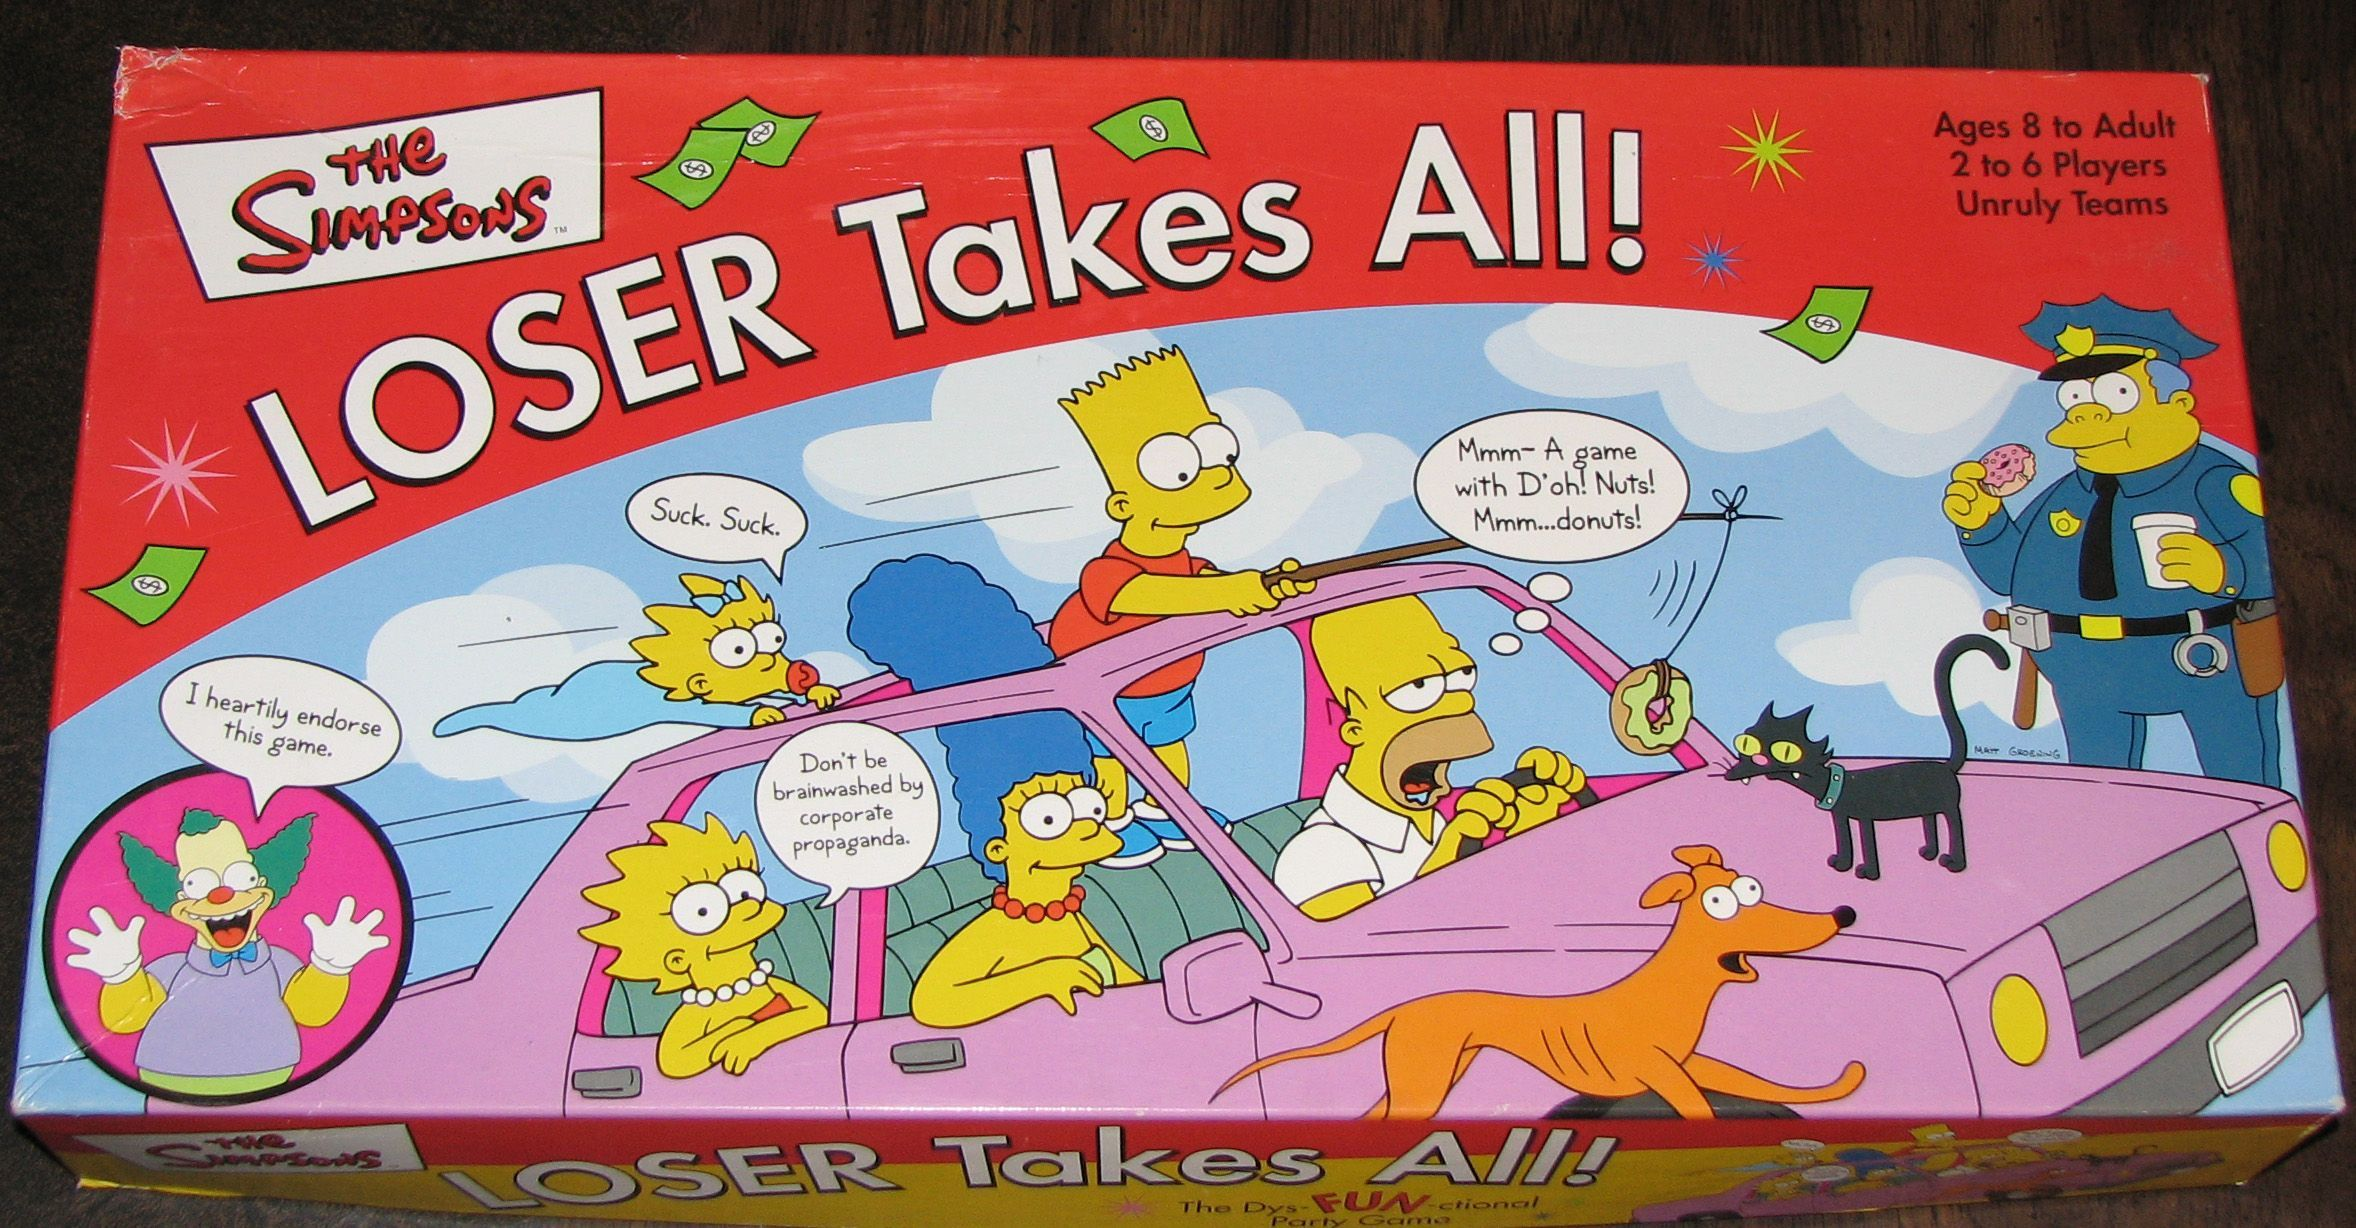 The Simpsons: LOSER Takes All!